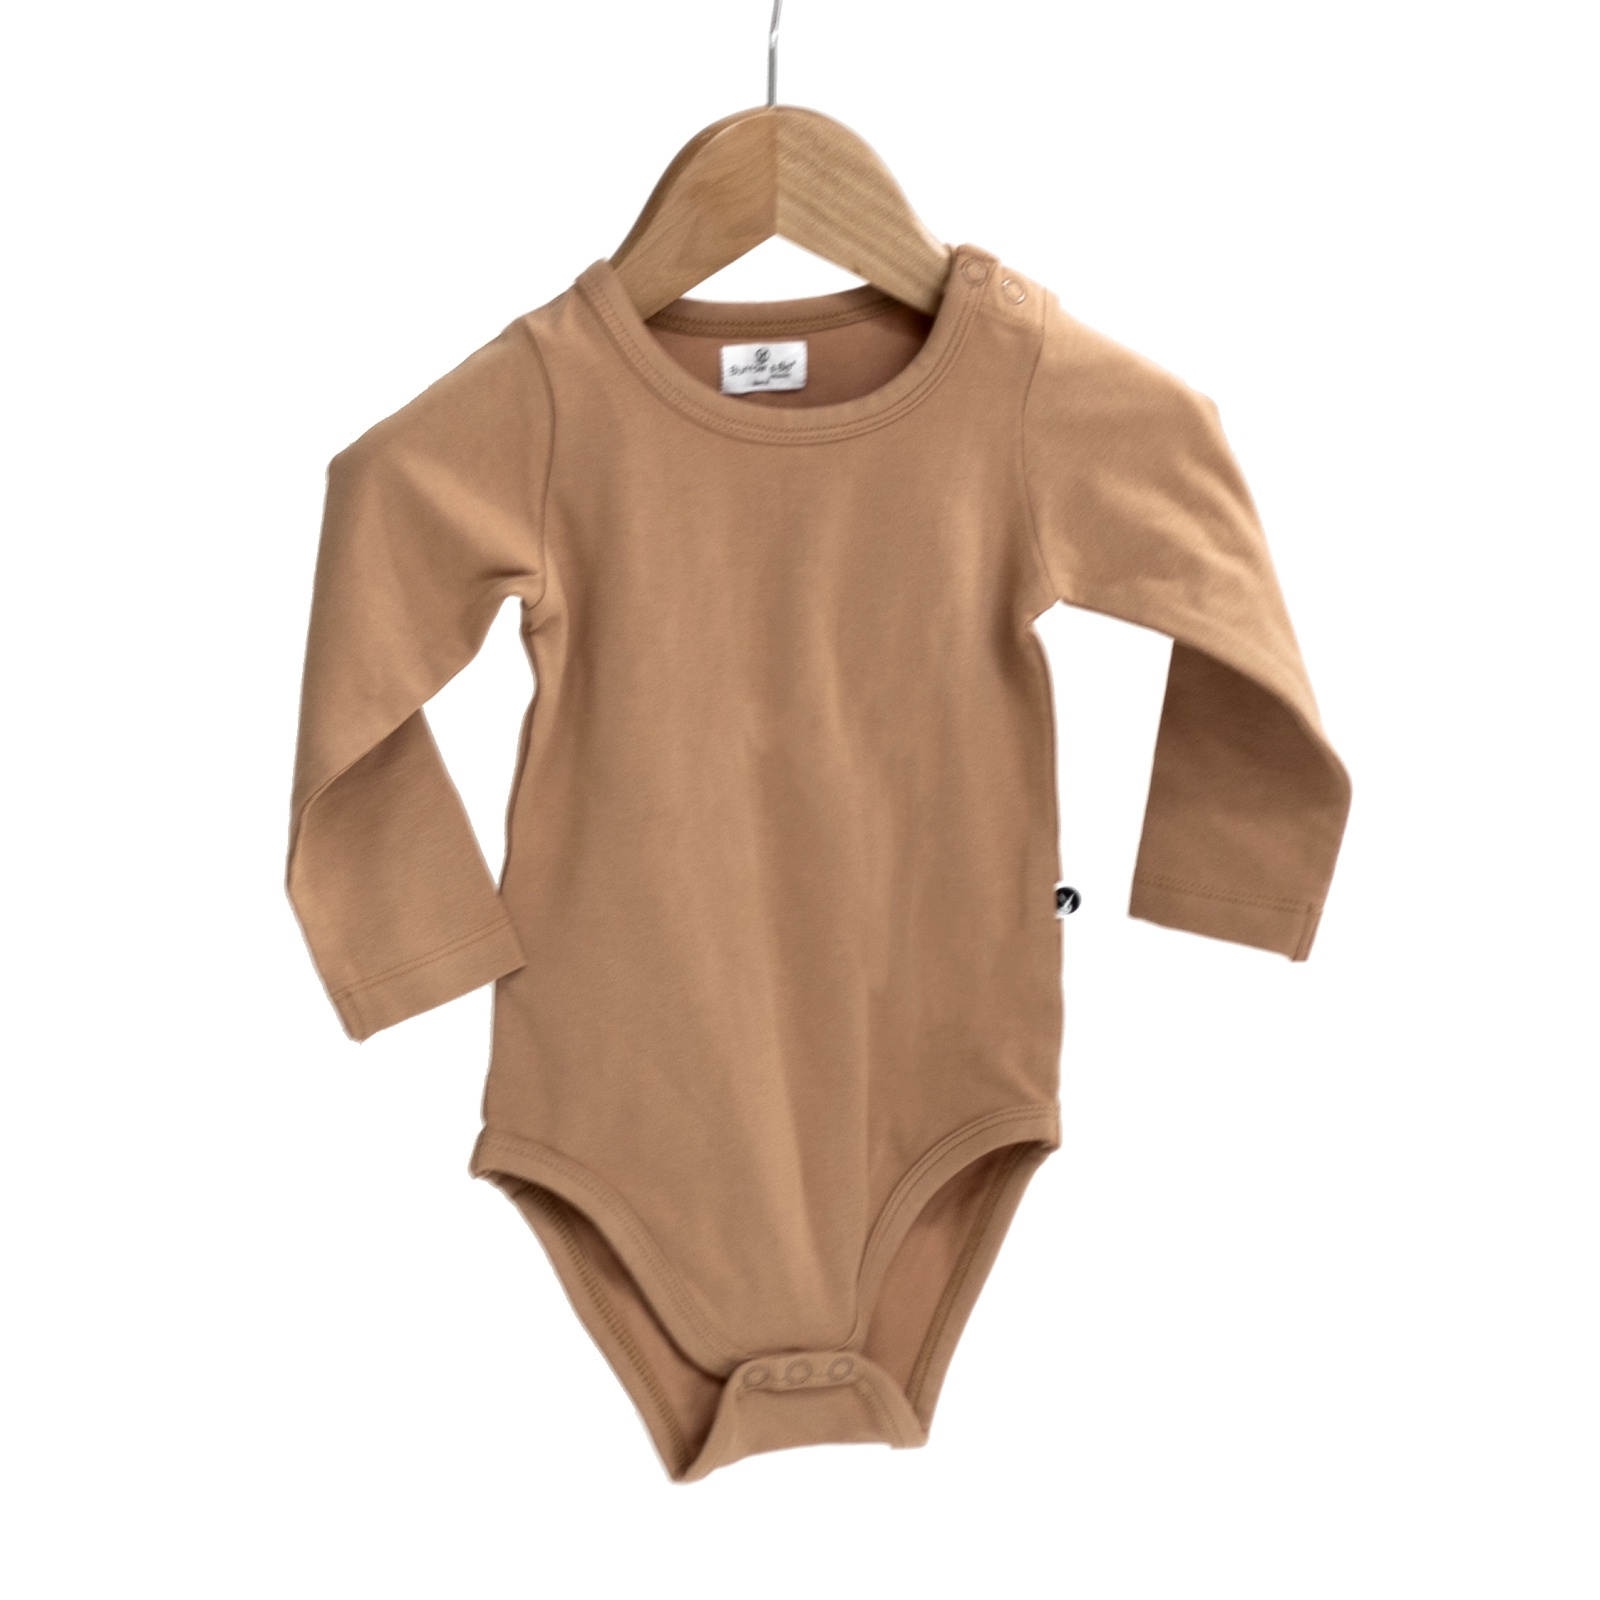 ESSENTIAL SLEEP SUIT - TAWNY BROWN